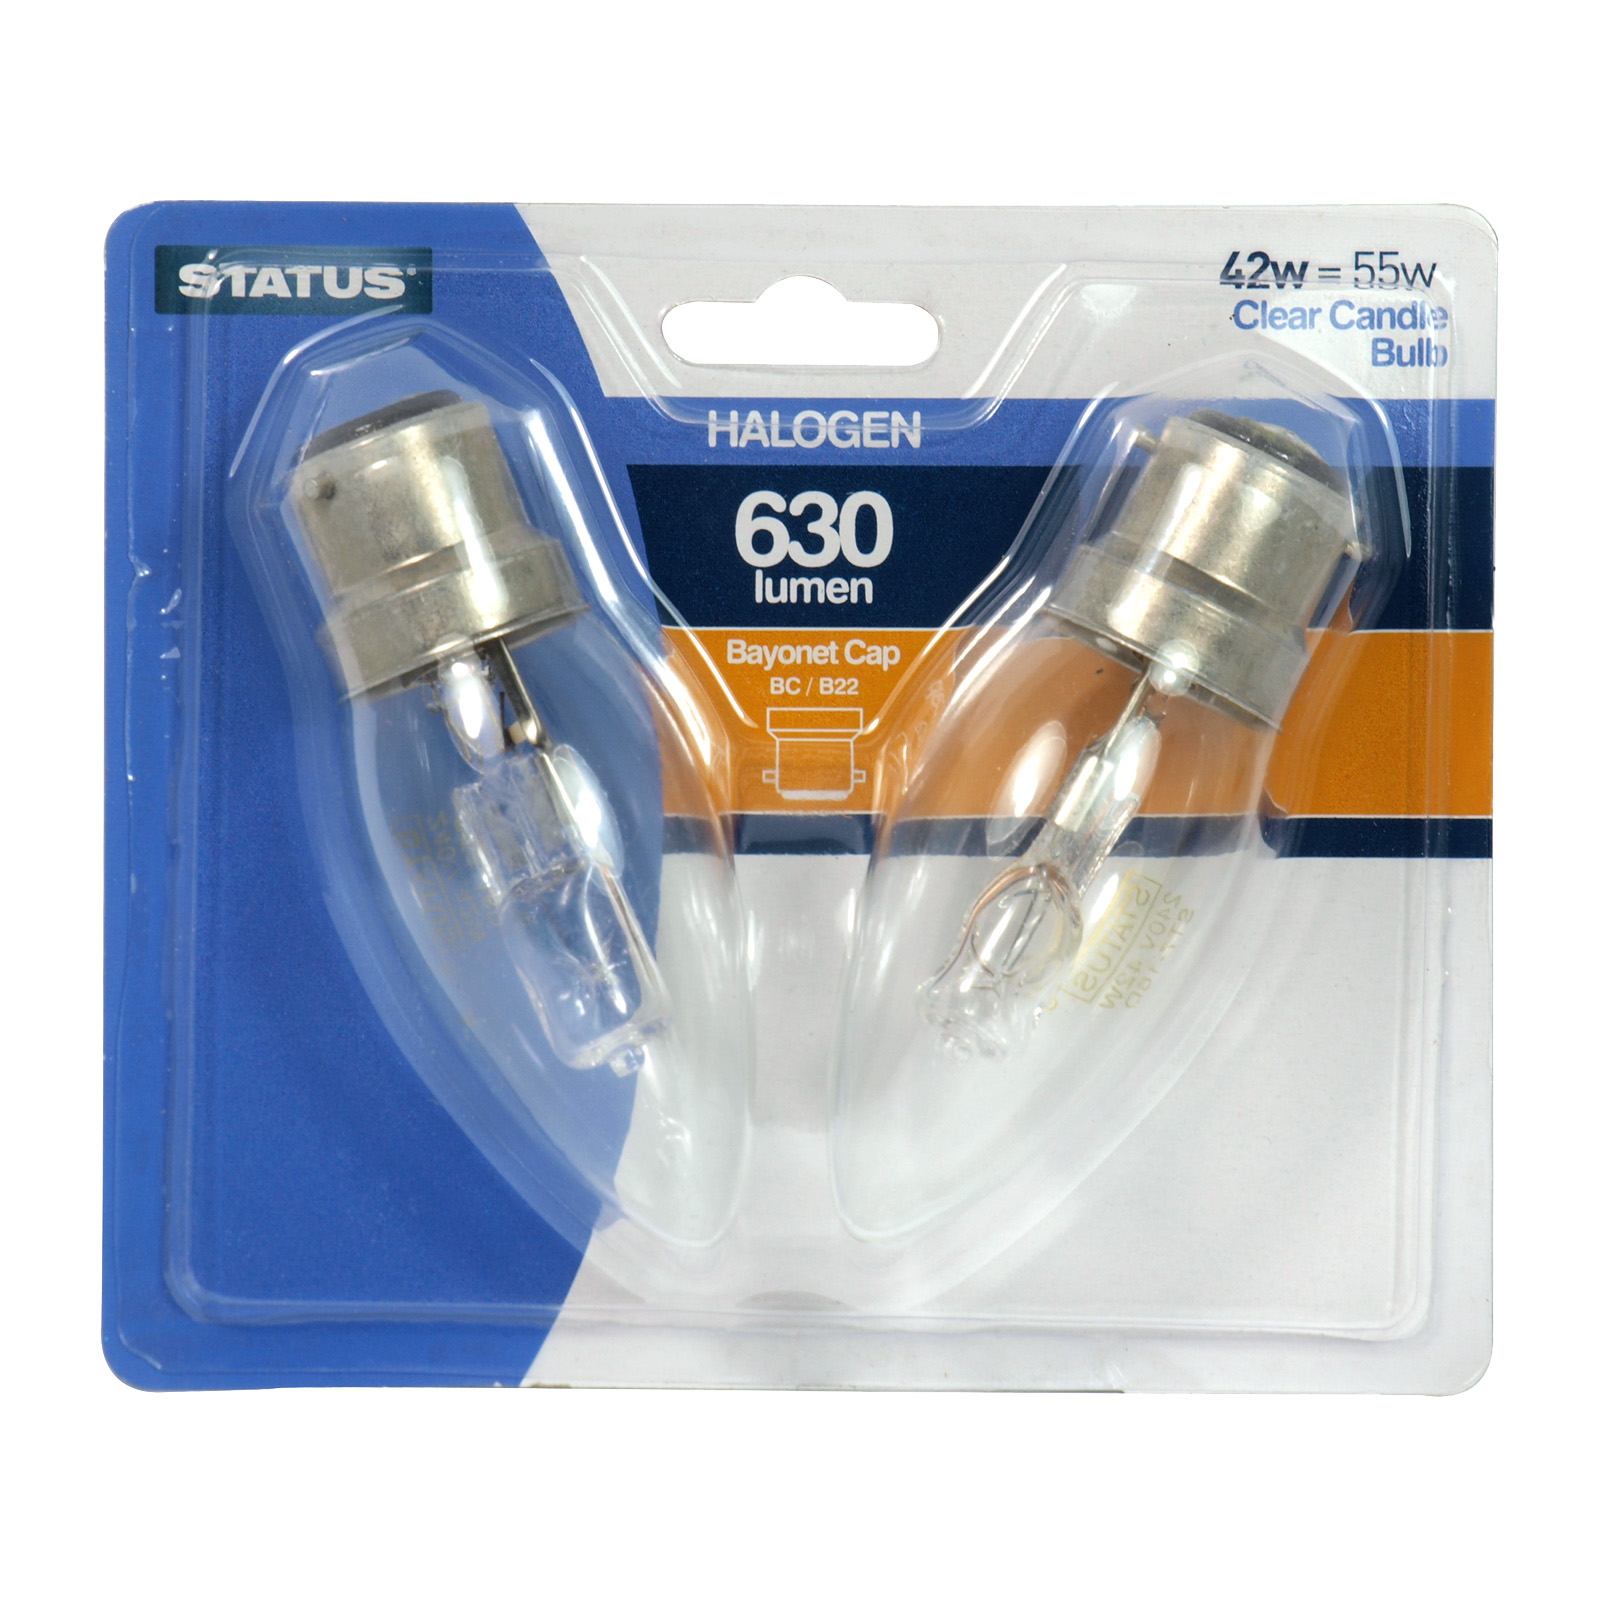 STATUS HALOGEN CANDLE LIGHT BULB 2X42W 630 LUMEN BC CLEAR